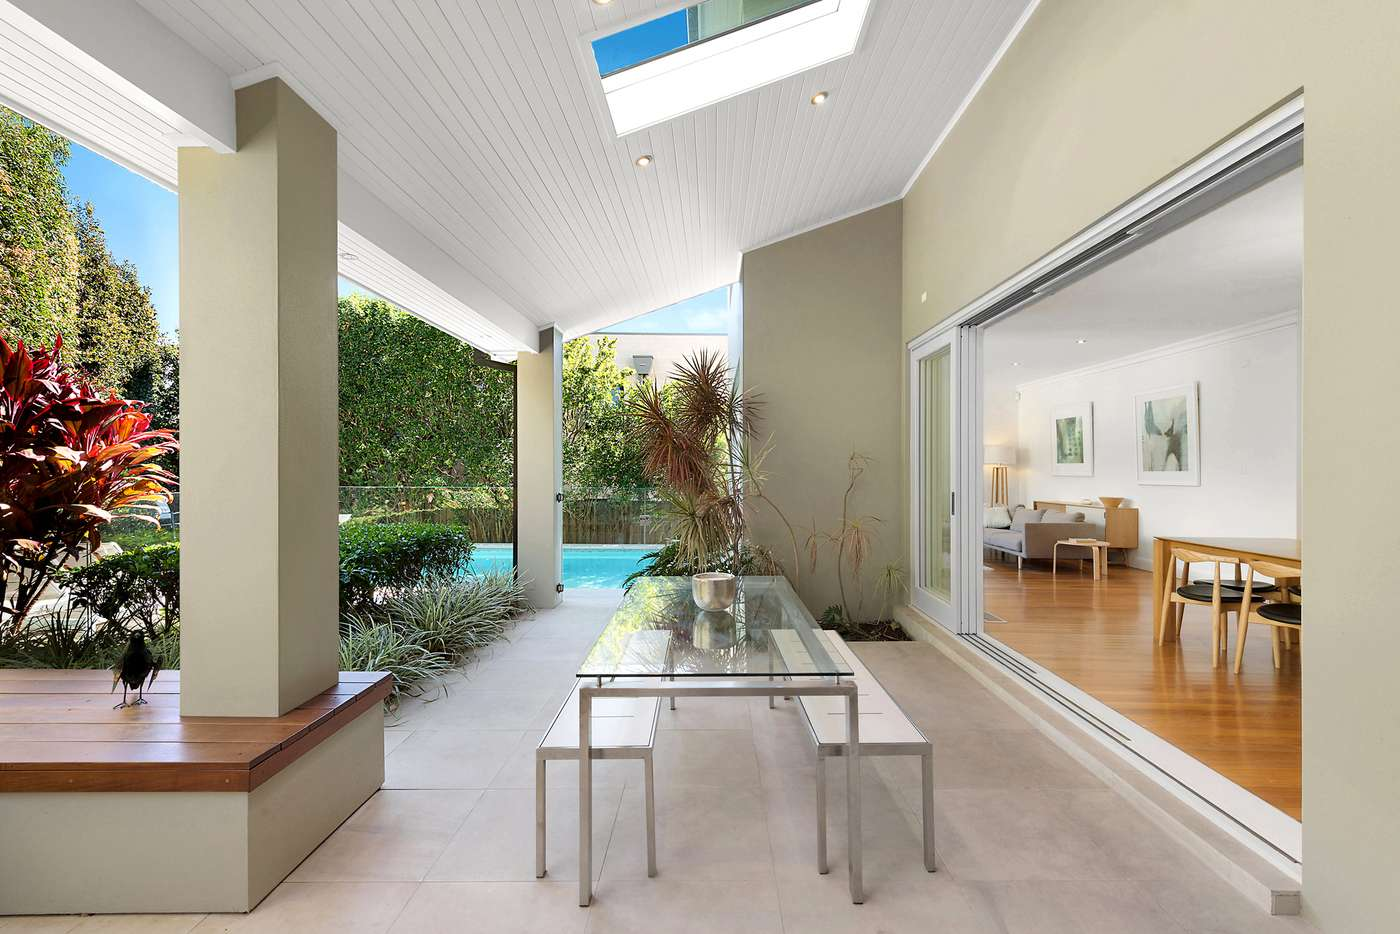 Fifth view of Homely house listing, 25 Rickard Avenue, Mosman NSW 2088